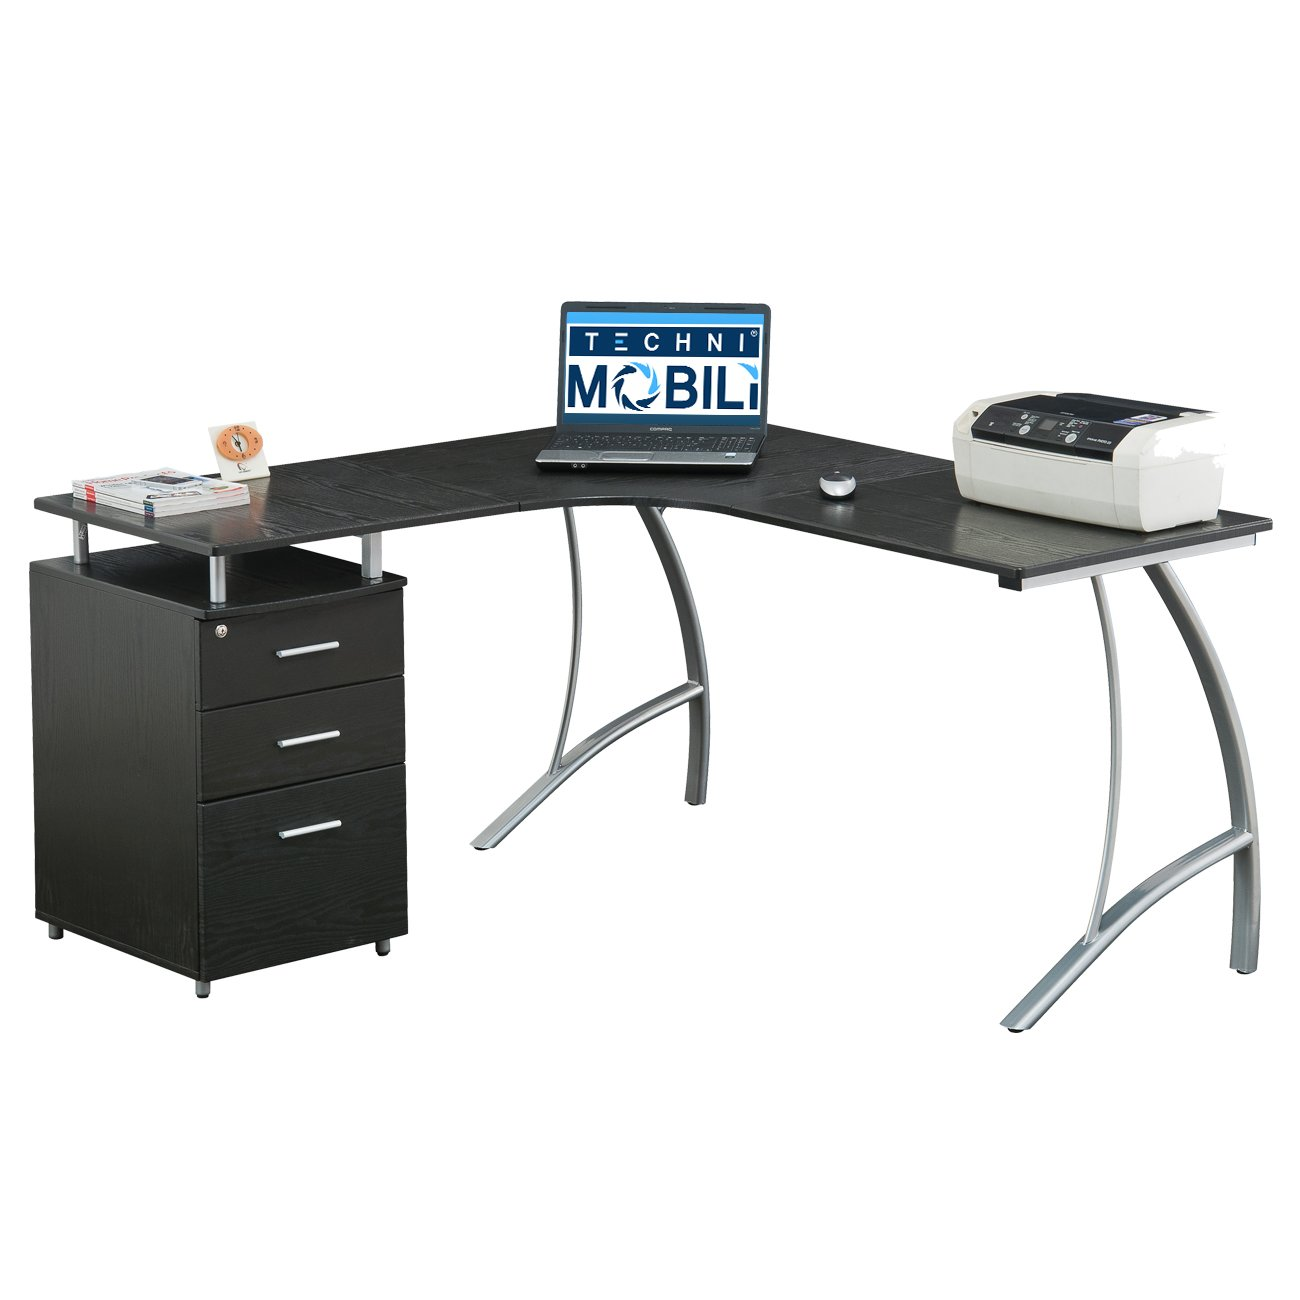 Amazon.com: TECHNI MOBILI Modern L- Shaped Computer Desk with File ...